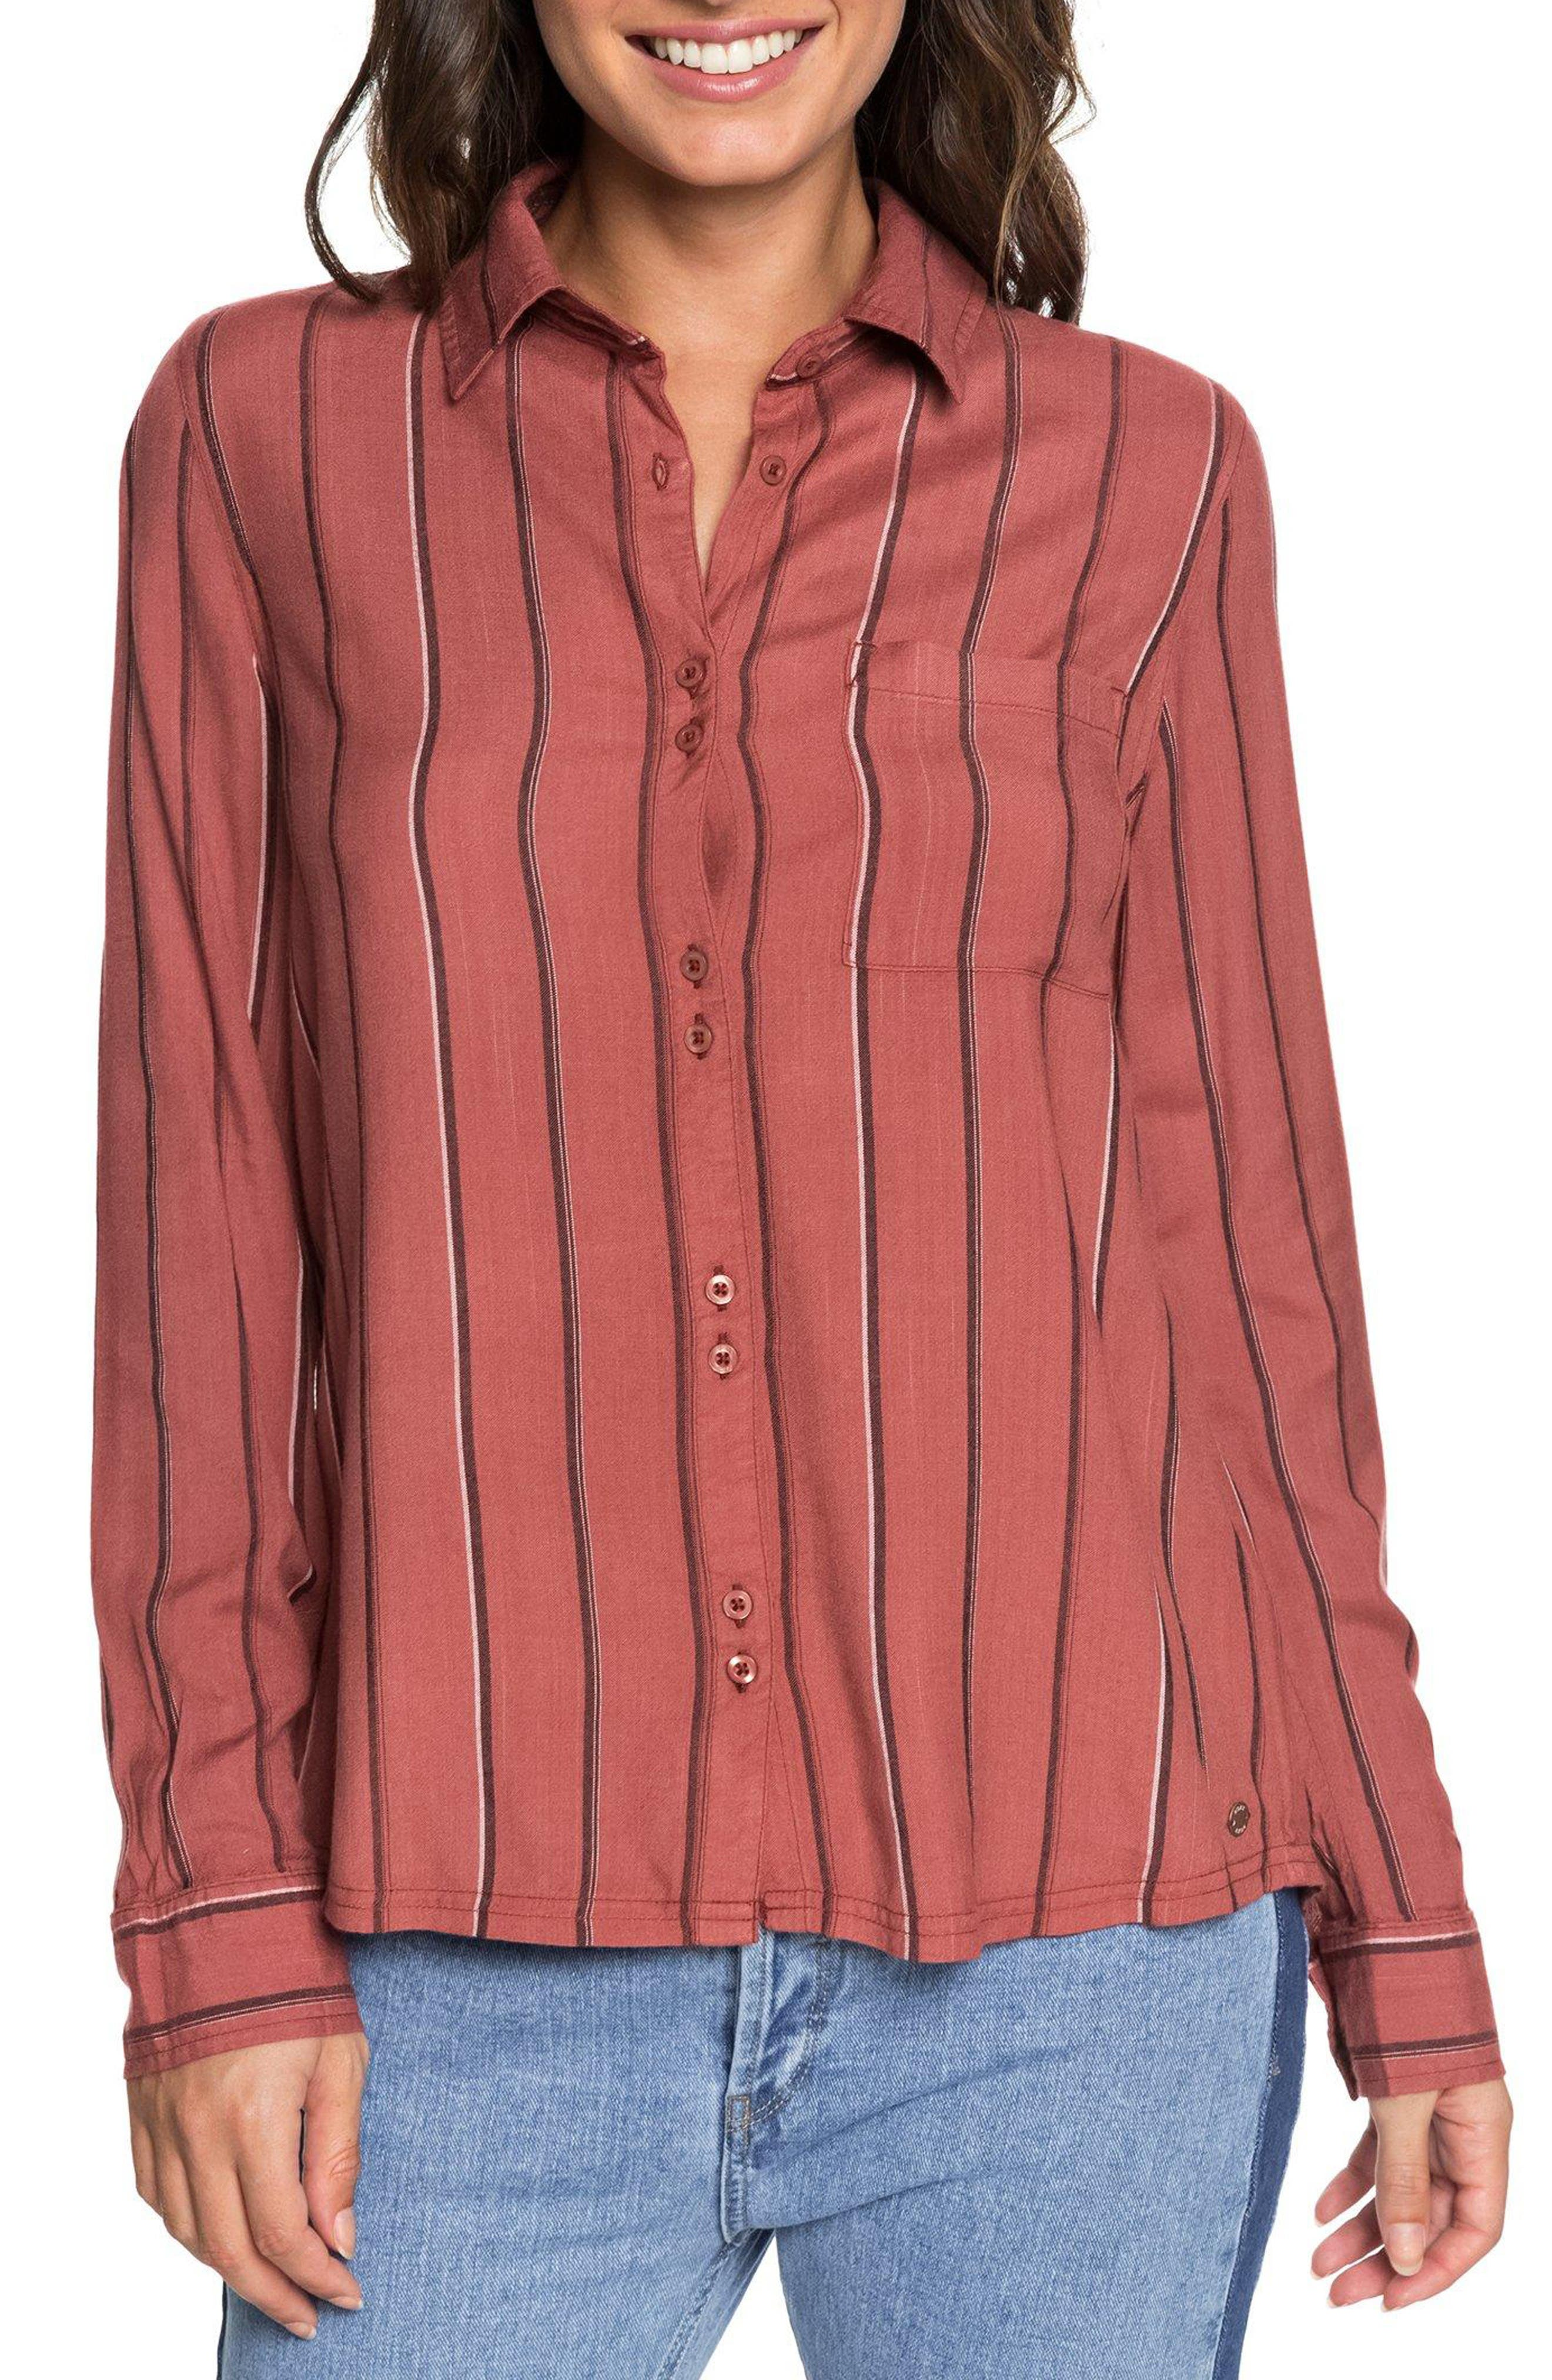 Concrete Streets Stripe Shirt,                             Main thumbnail 1, color,                             WITHERED ROSE